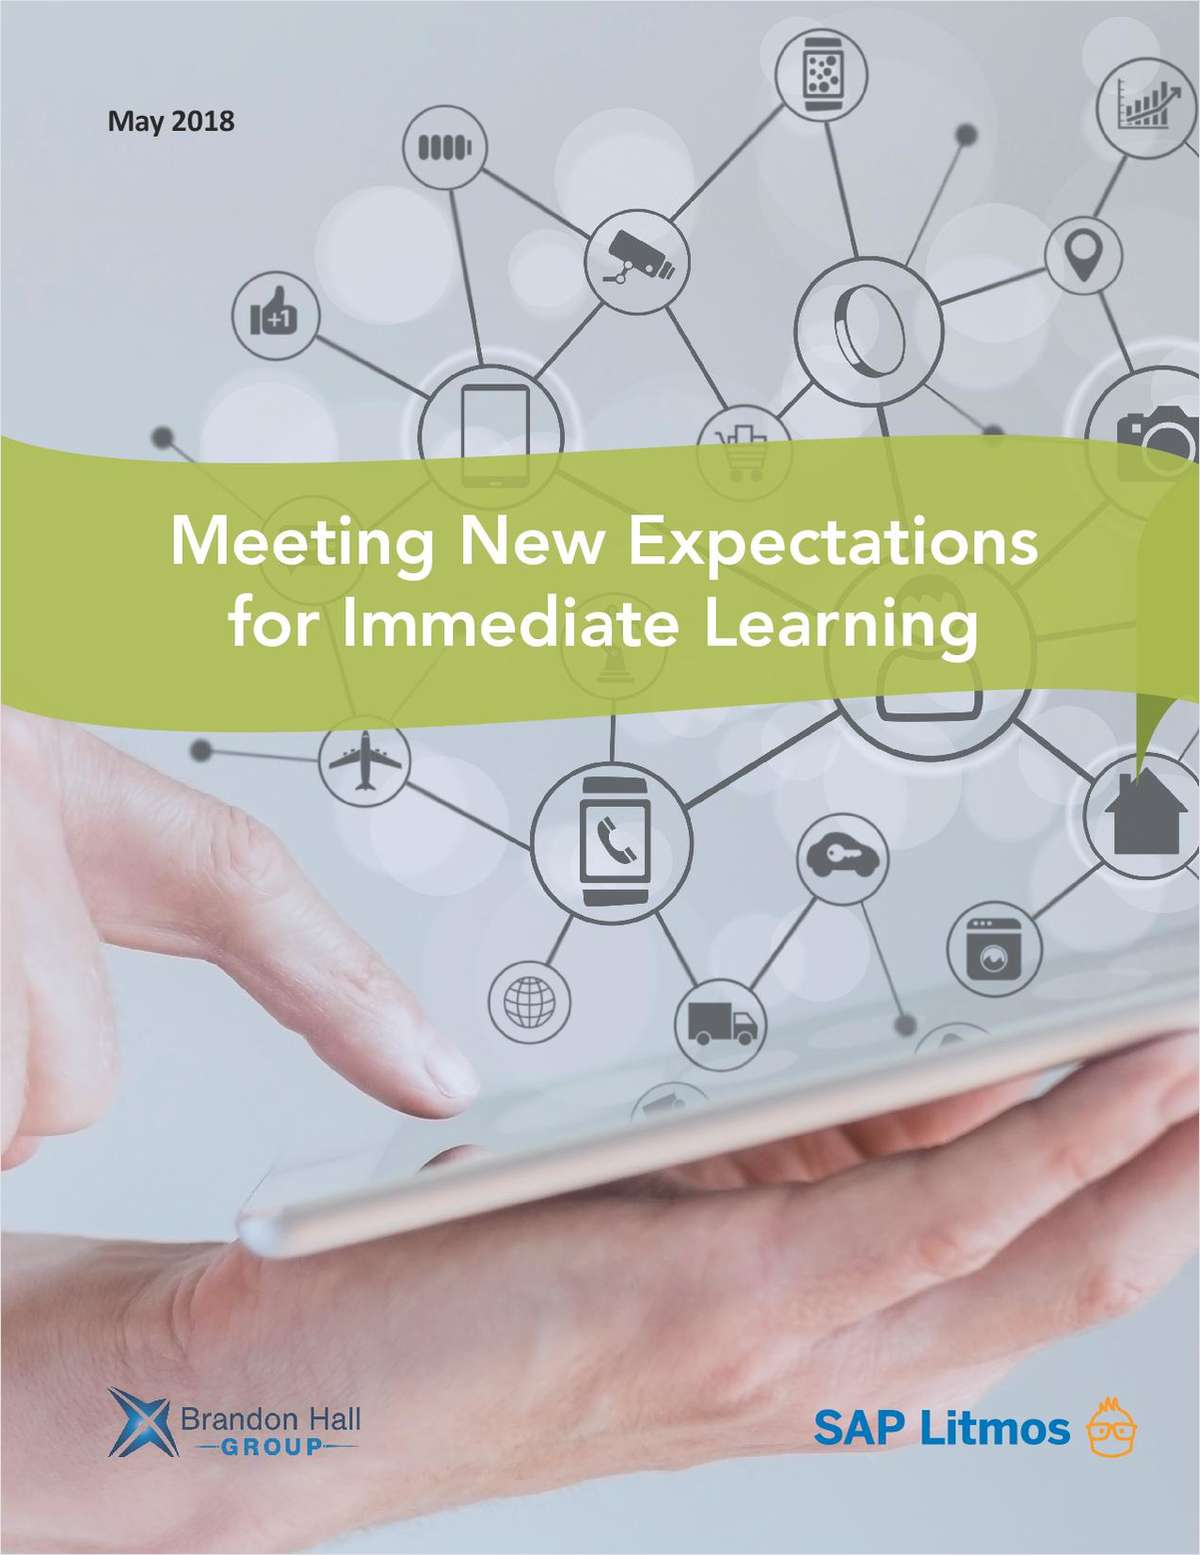 Meeting New Expectations for Immediate Learning